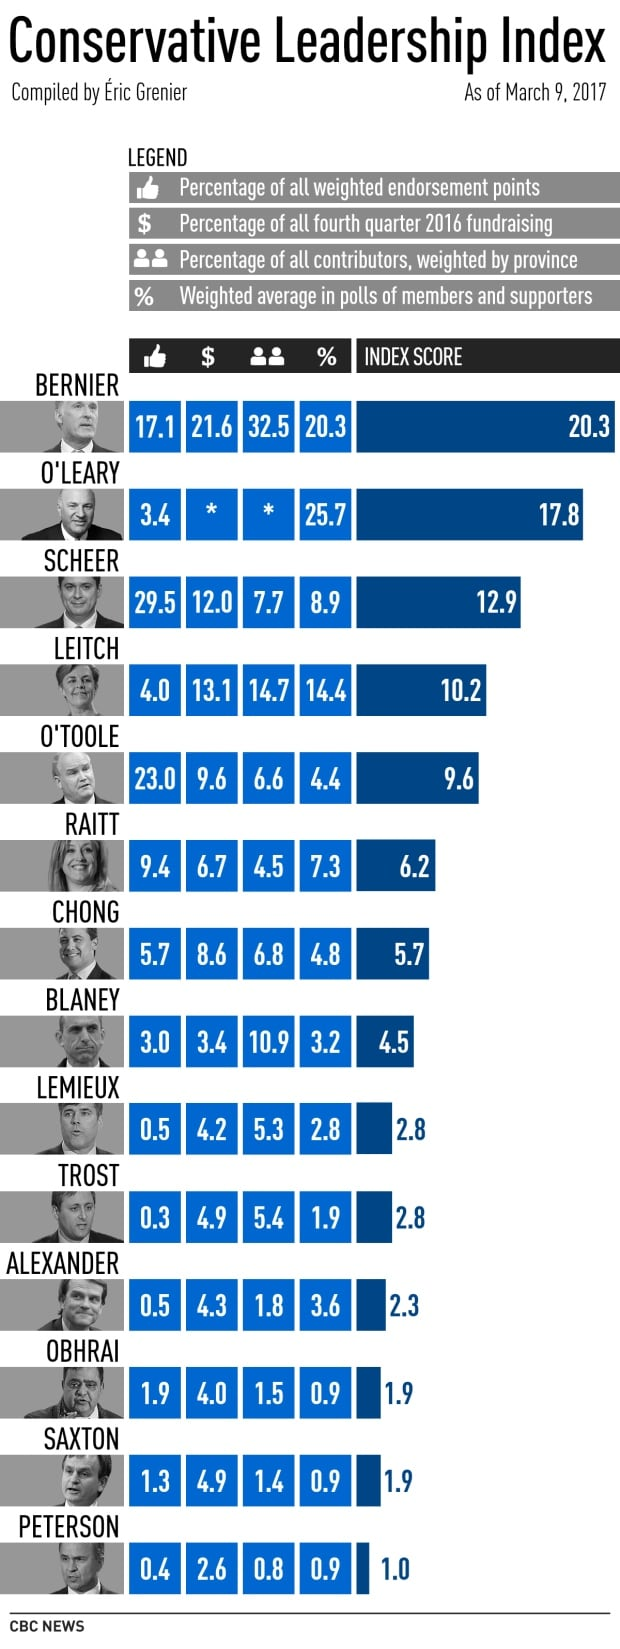 Conservative Leadership Index, Mar. 9